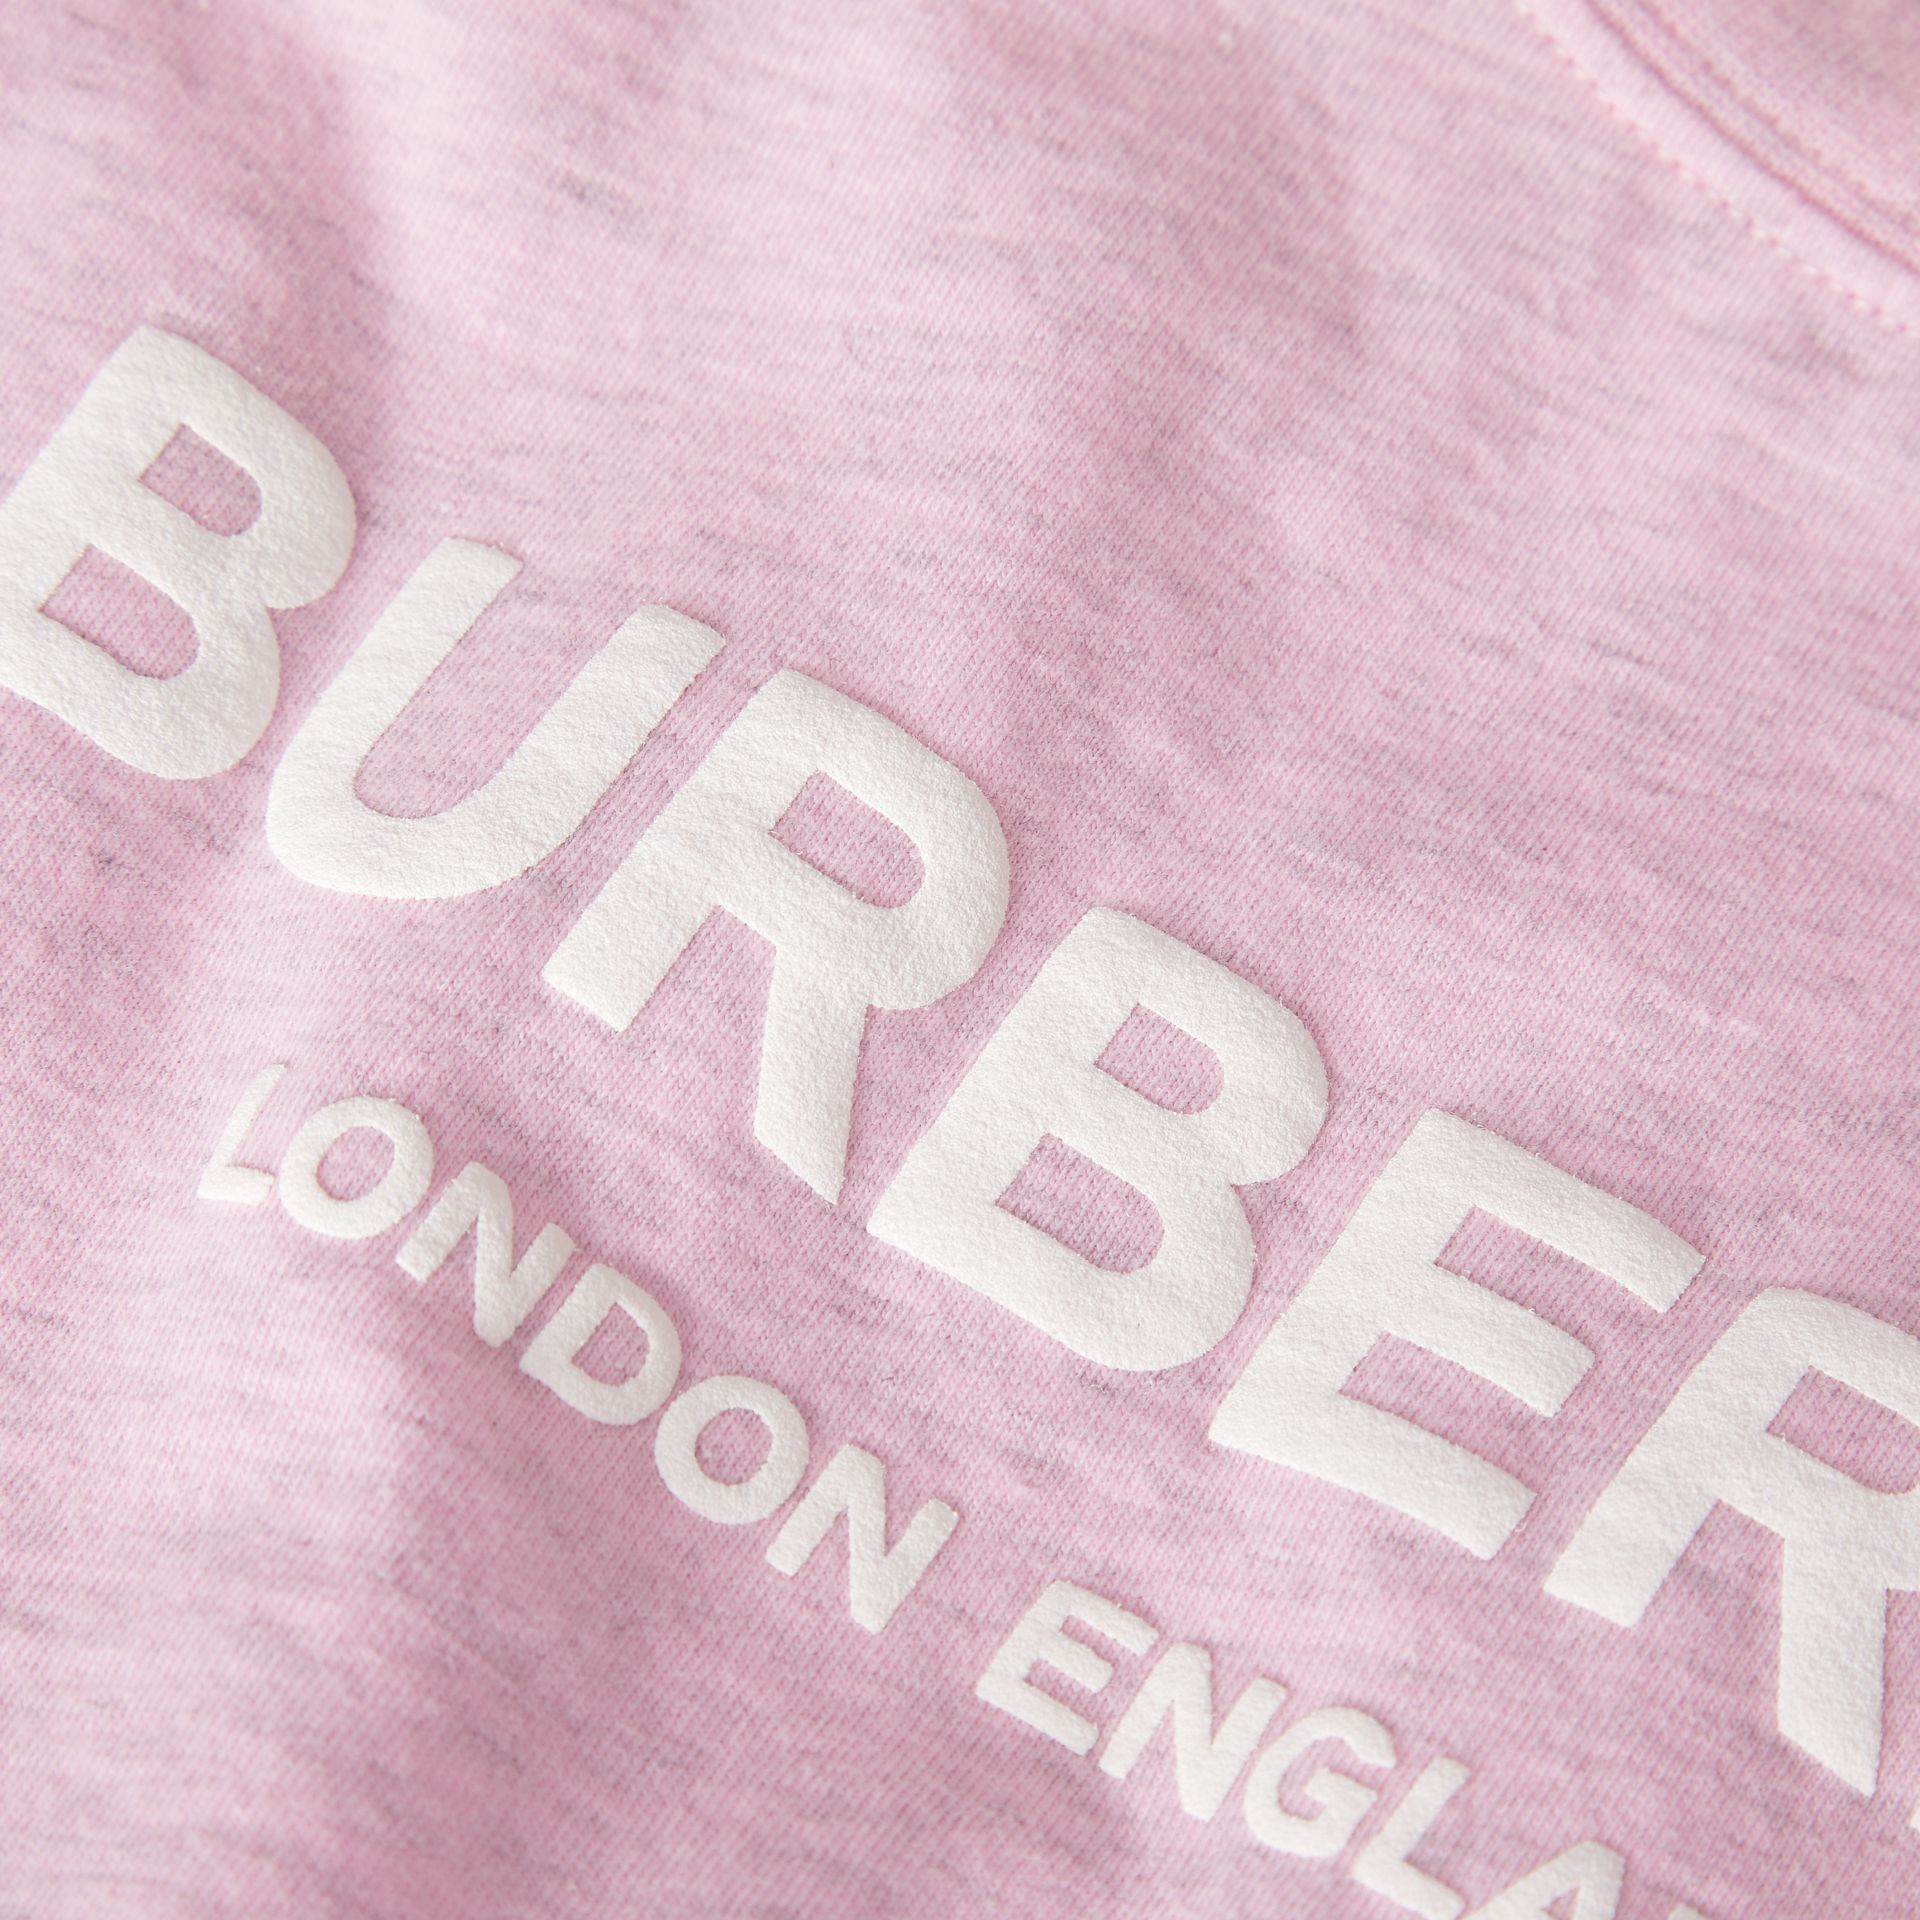 Logo Print Cotton T-shirt in Pale Neon Pink - Children | Burberry Singapore - gallery image 1